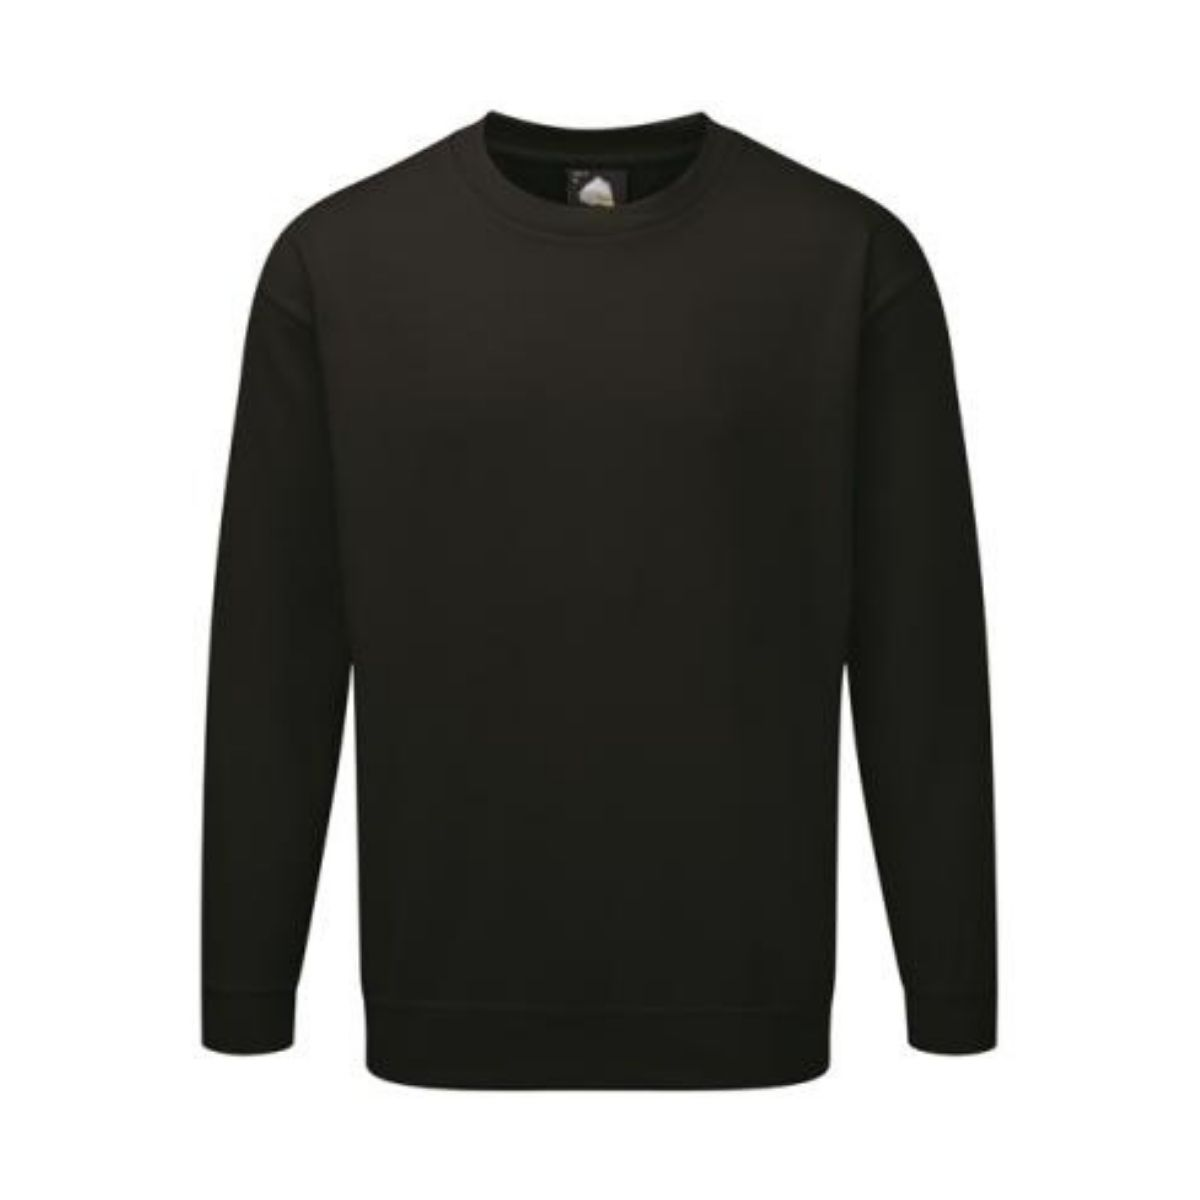 WW1250 Kite Premium 320gsm Sweatshirt